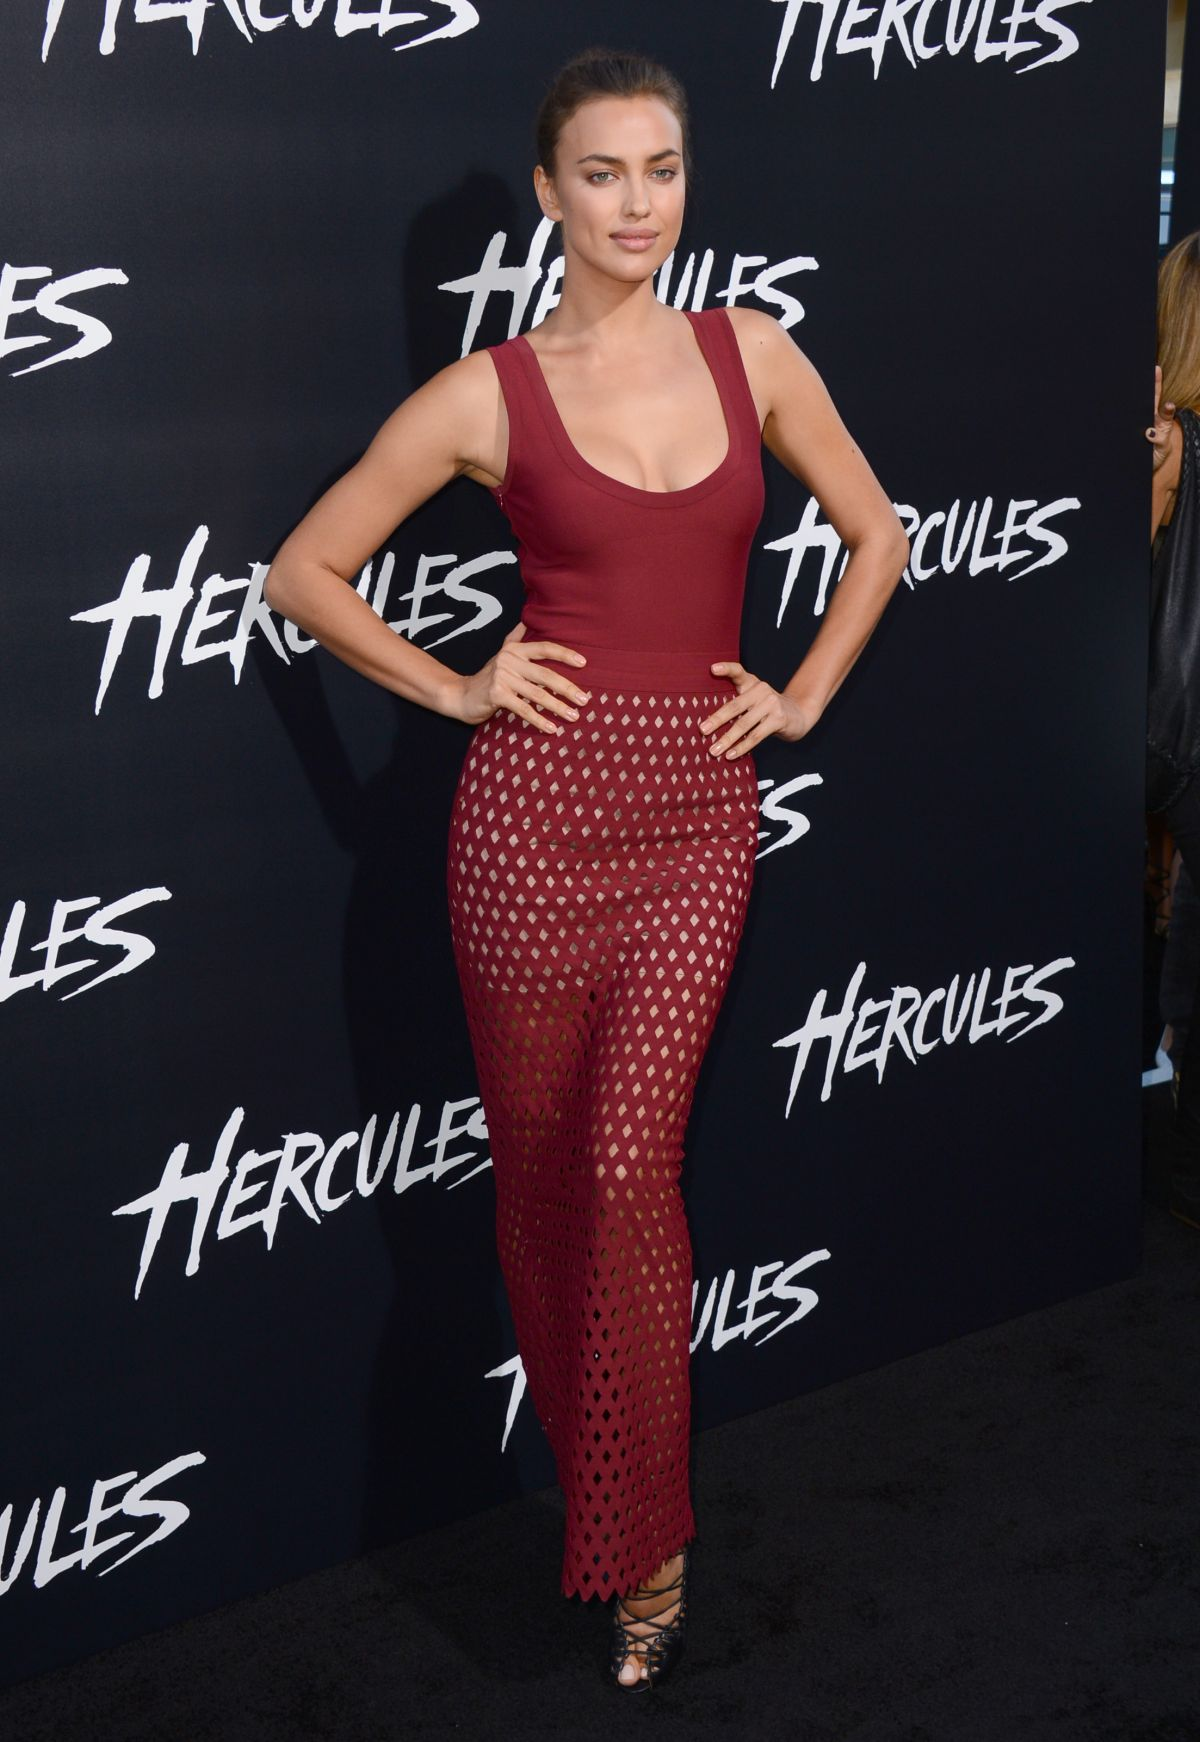 IRINA SHAYK at Hercules Premiere in Los Angeles